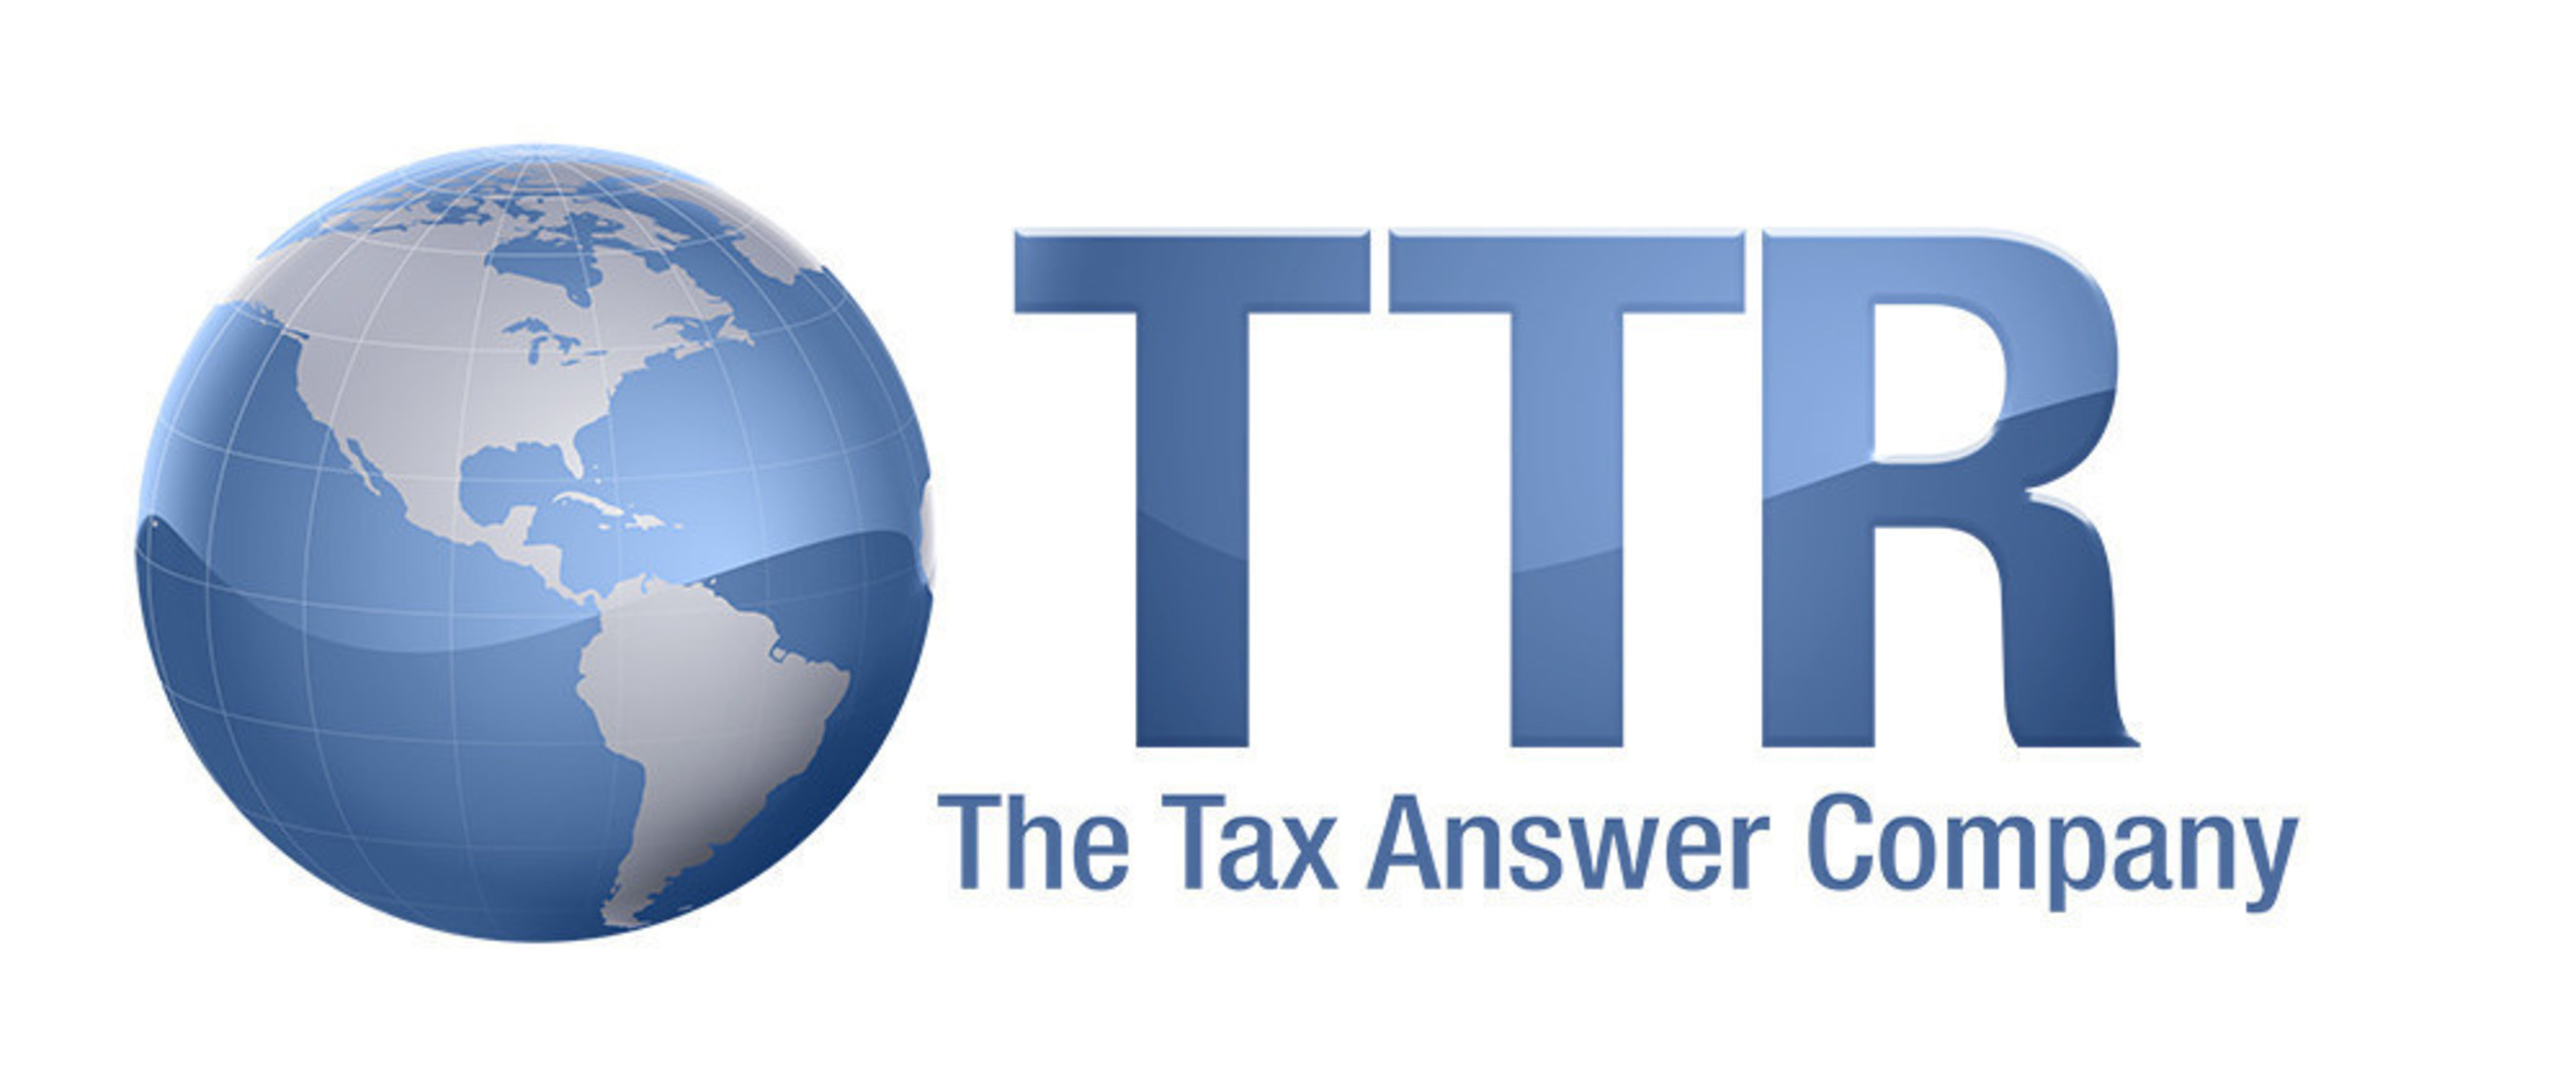 TTR Announces the Release of First-Ever Free Tax Law Research System Beta